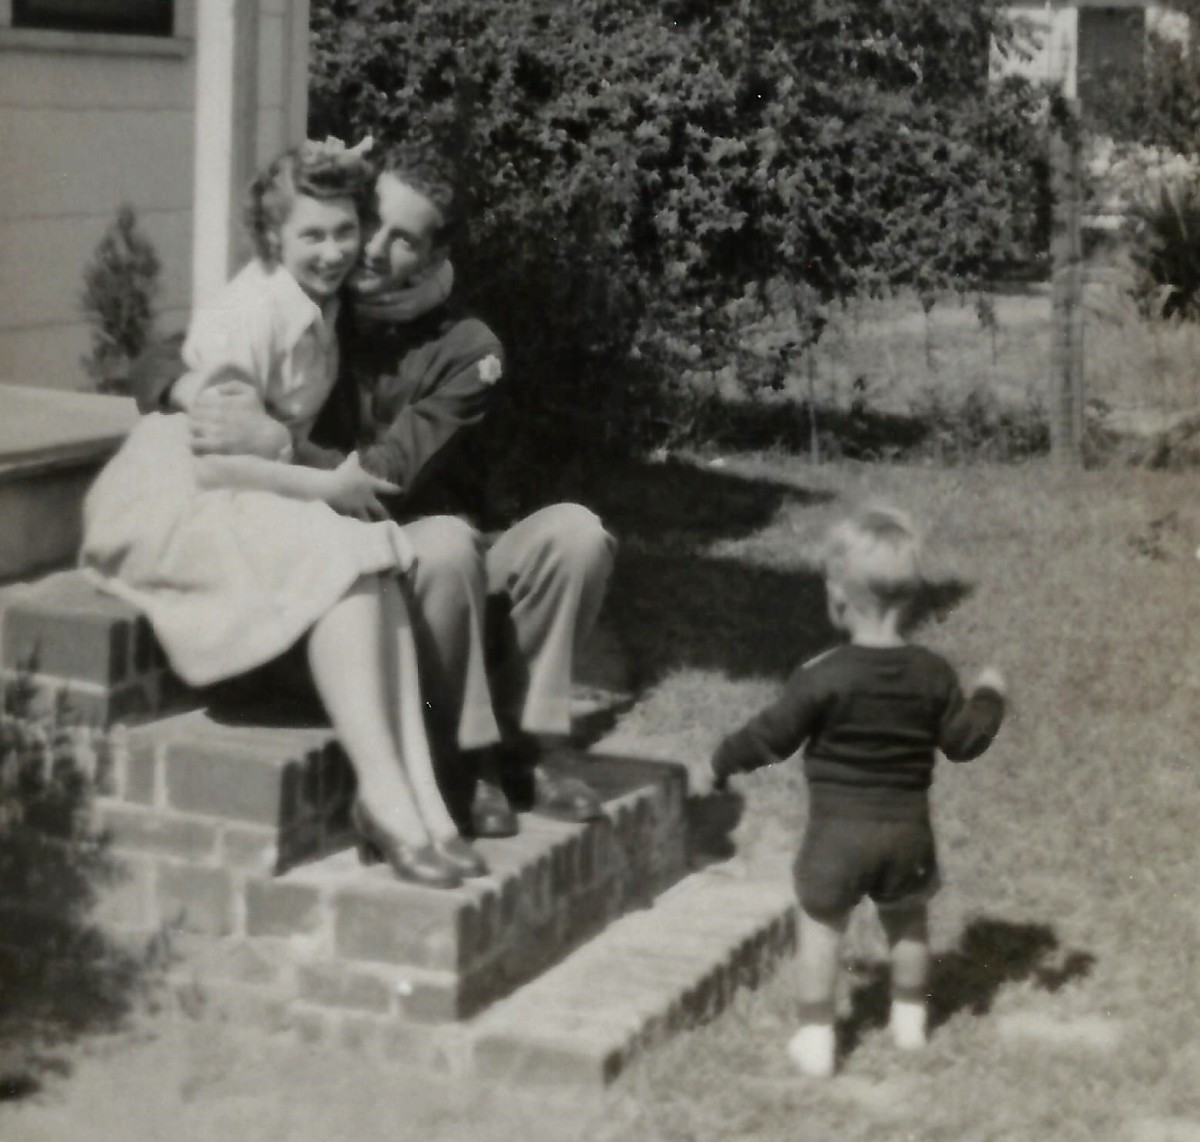 The happy day arrived!  Father, mother and son reunited after the war!